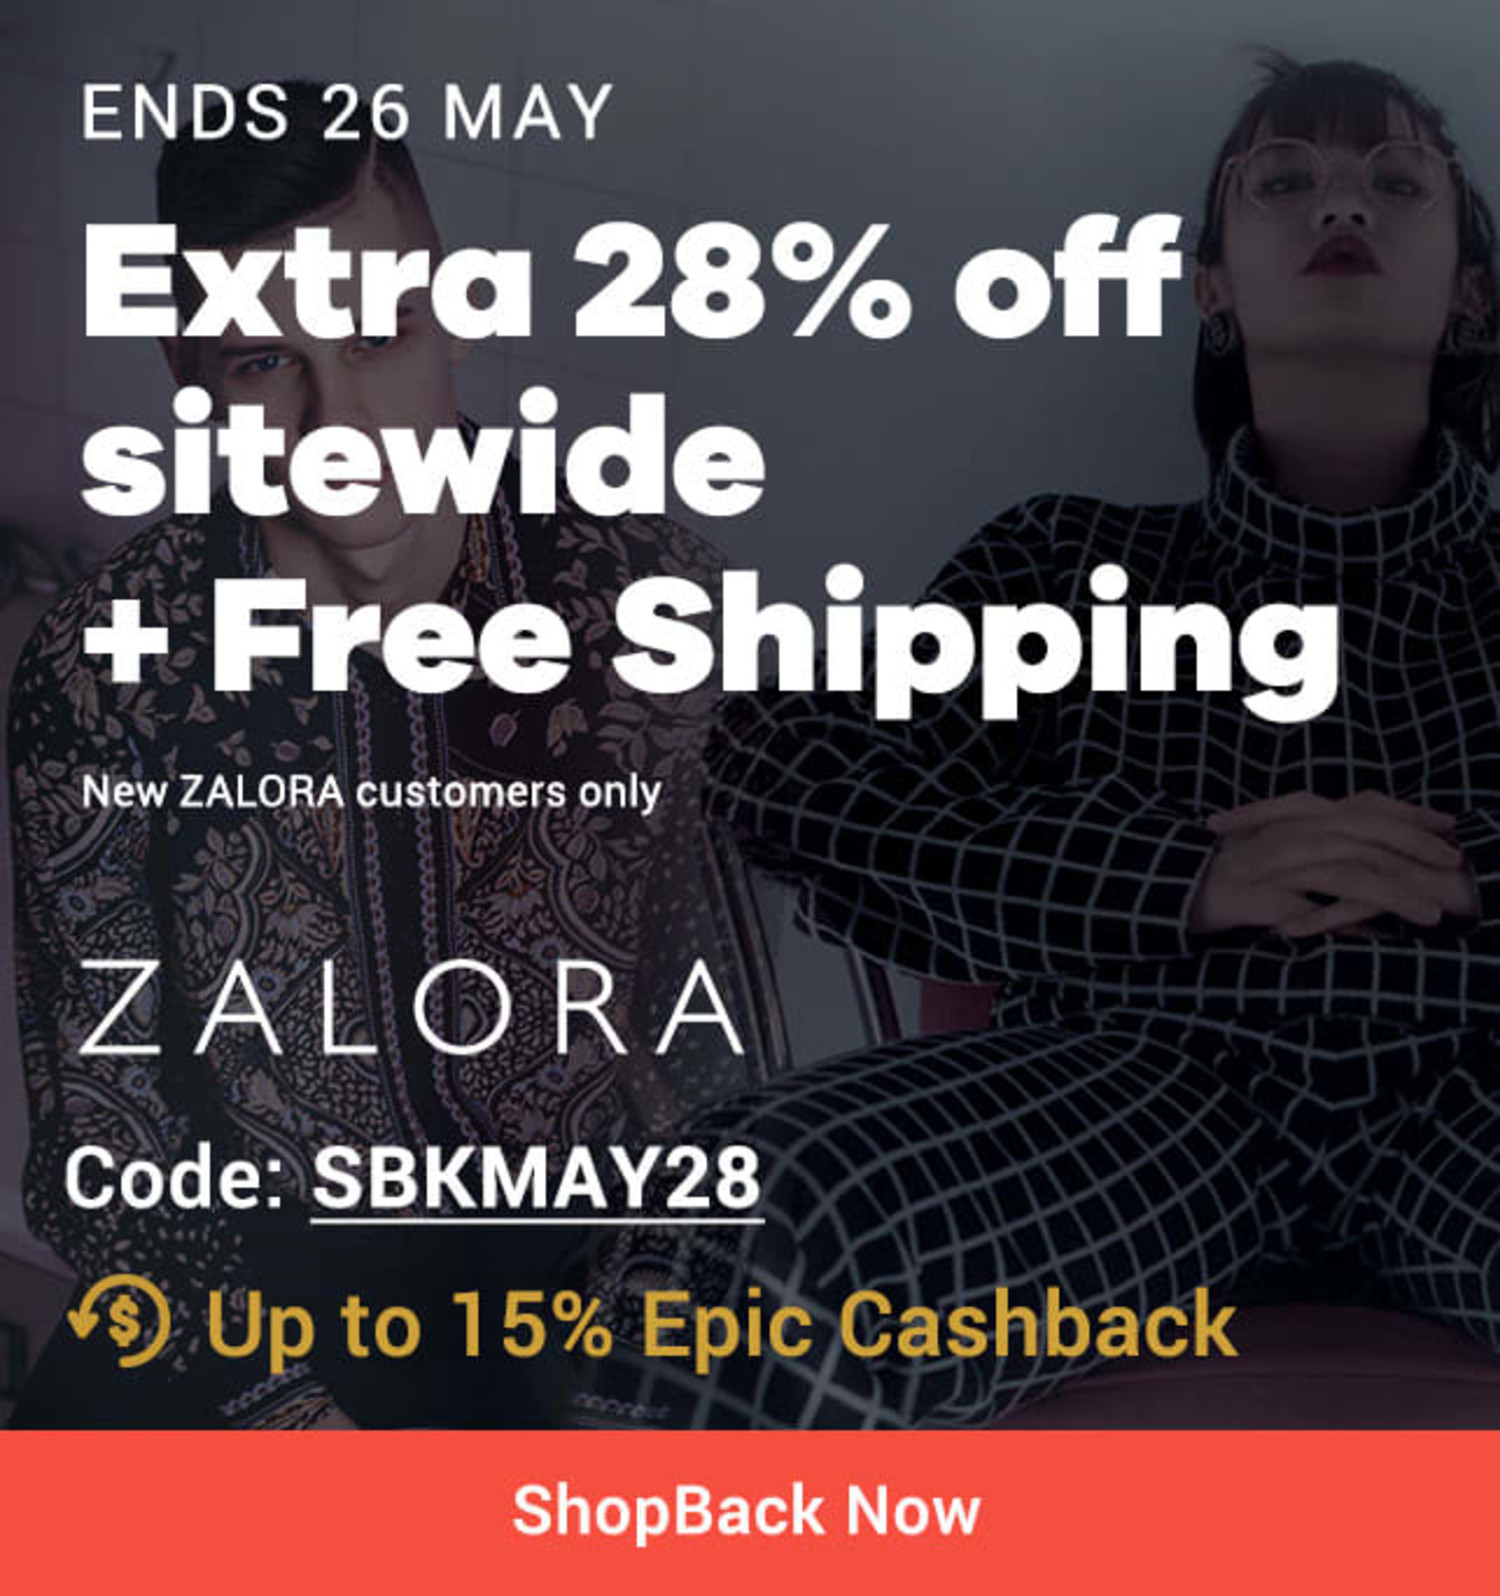 Ends 26 May ZALORA Extra 28% off sitewide + Free Shipping code: SBKMAY28  + Up to 15% off Epic Cashback (was 2%) cta: Shop now | New ZALORA customers only